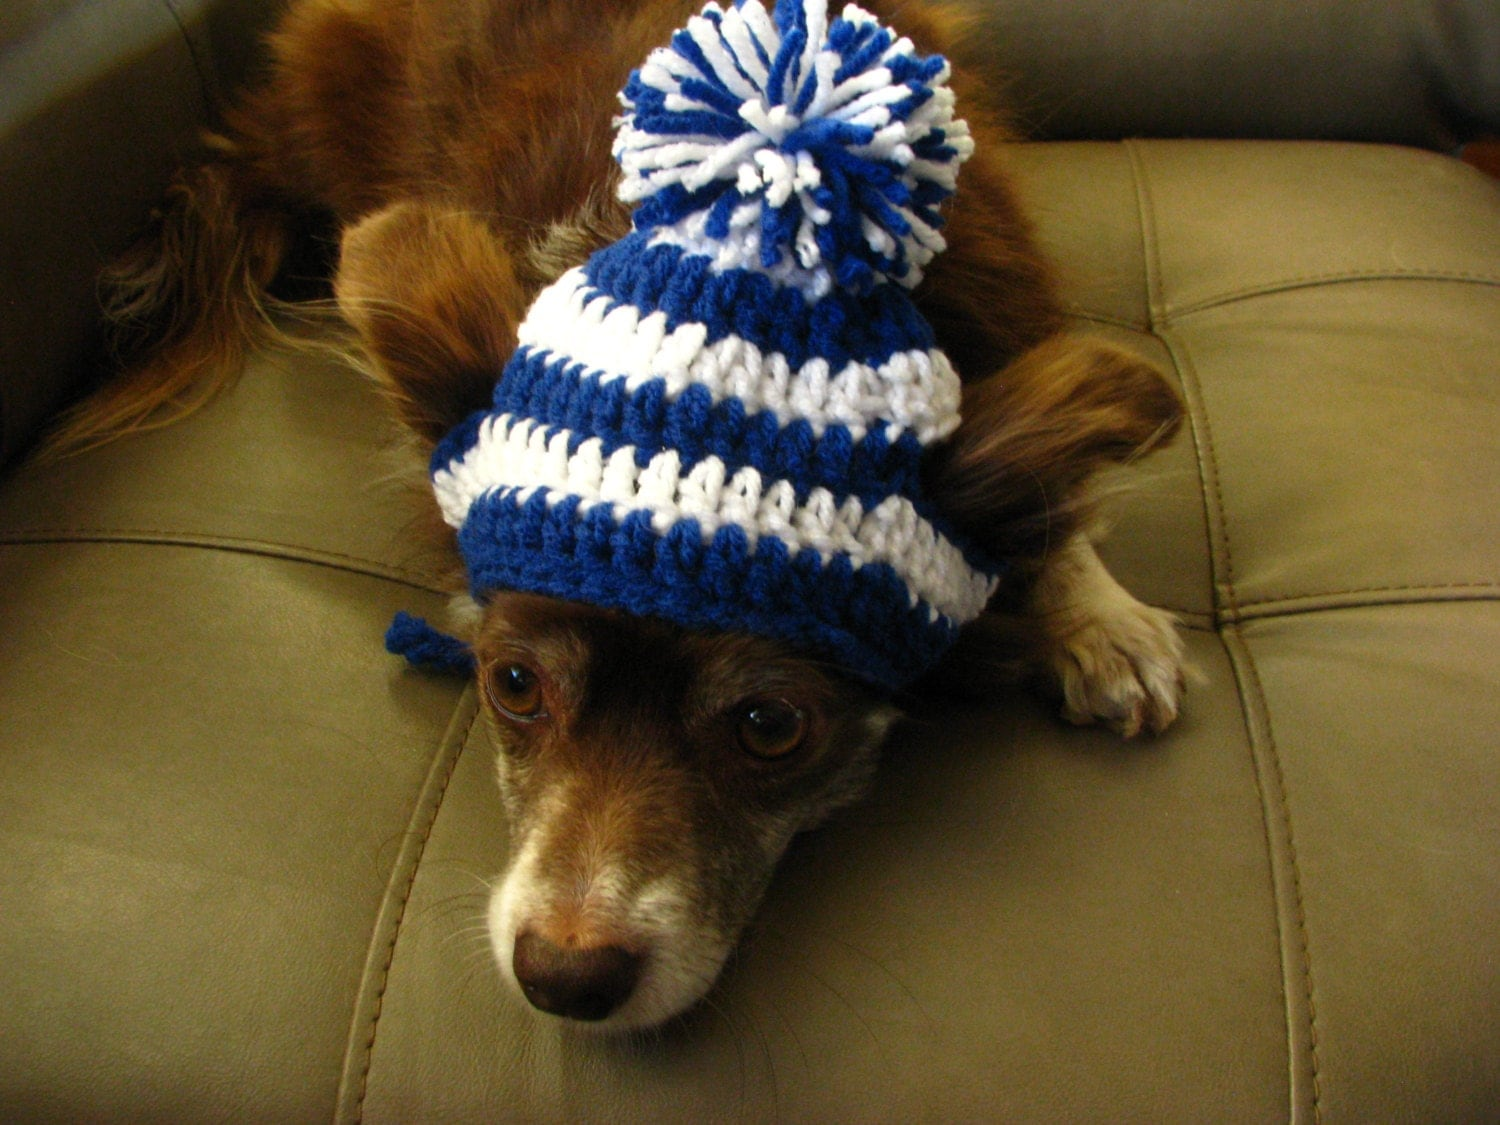 Crochet Pattern For Dog Hat With Ear Holes : Small Dog Crochet Beanie UK Wildcats Dog Hat Blue and White